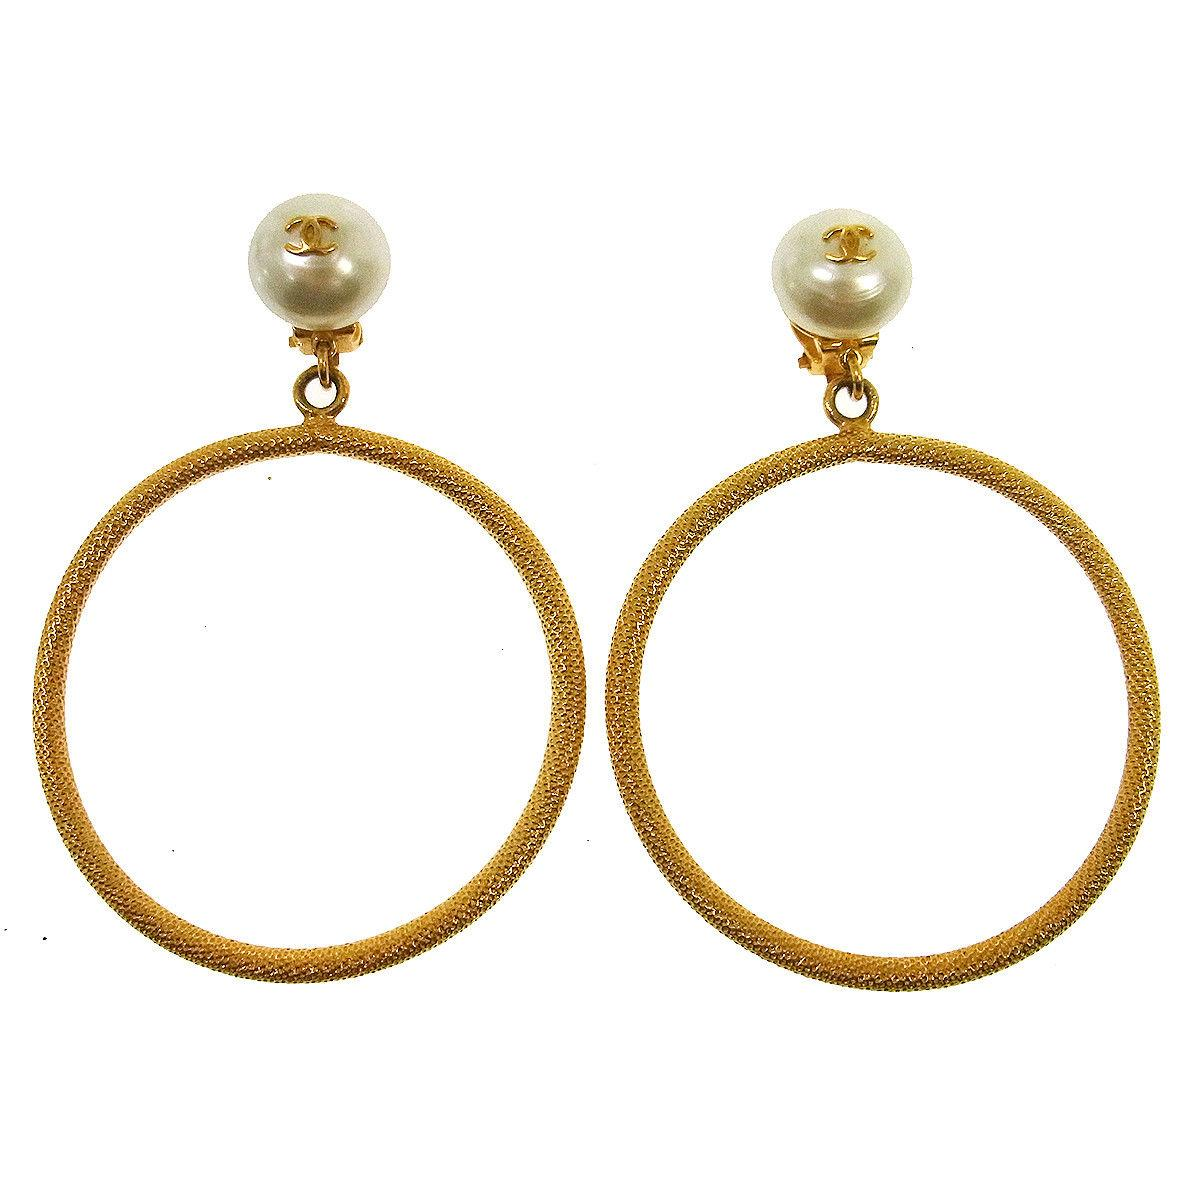 03a223030 Vintage Chanel Earrings - 591 For Sale at 1stdibs